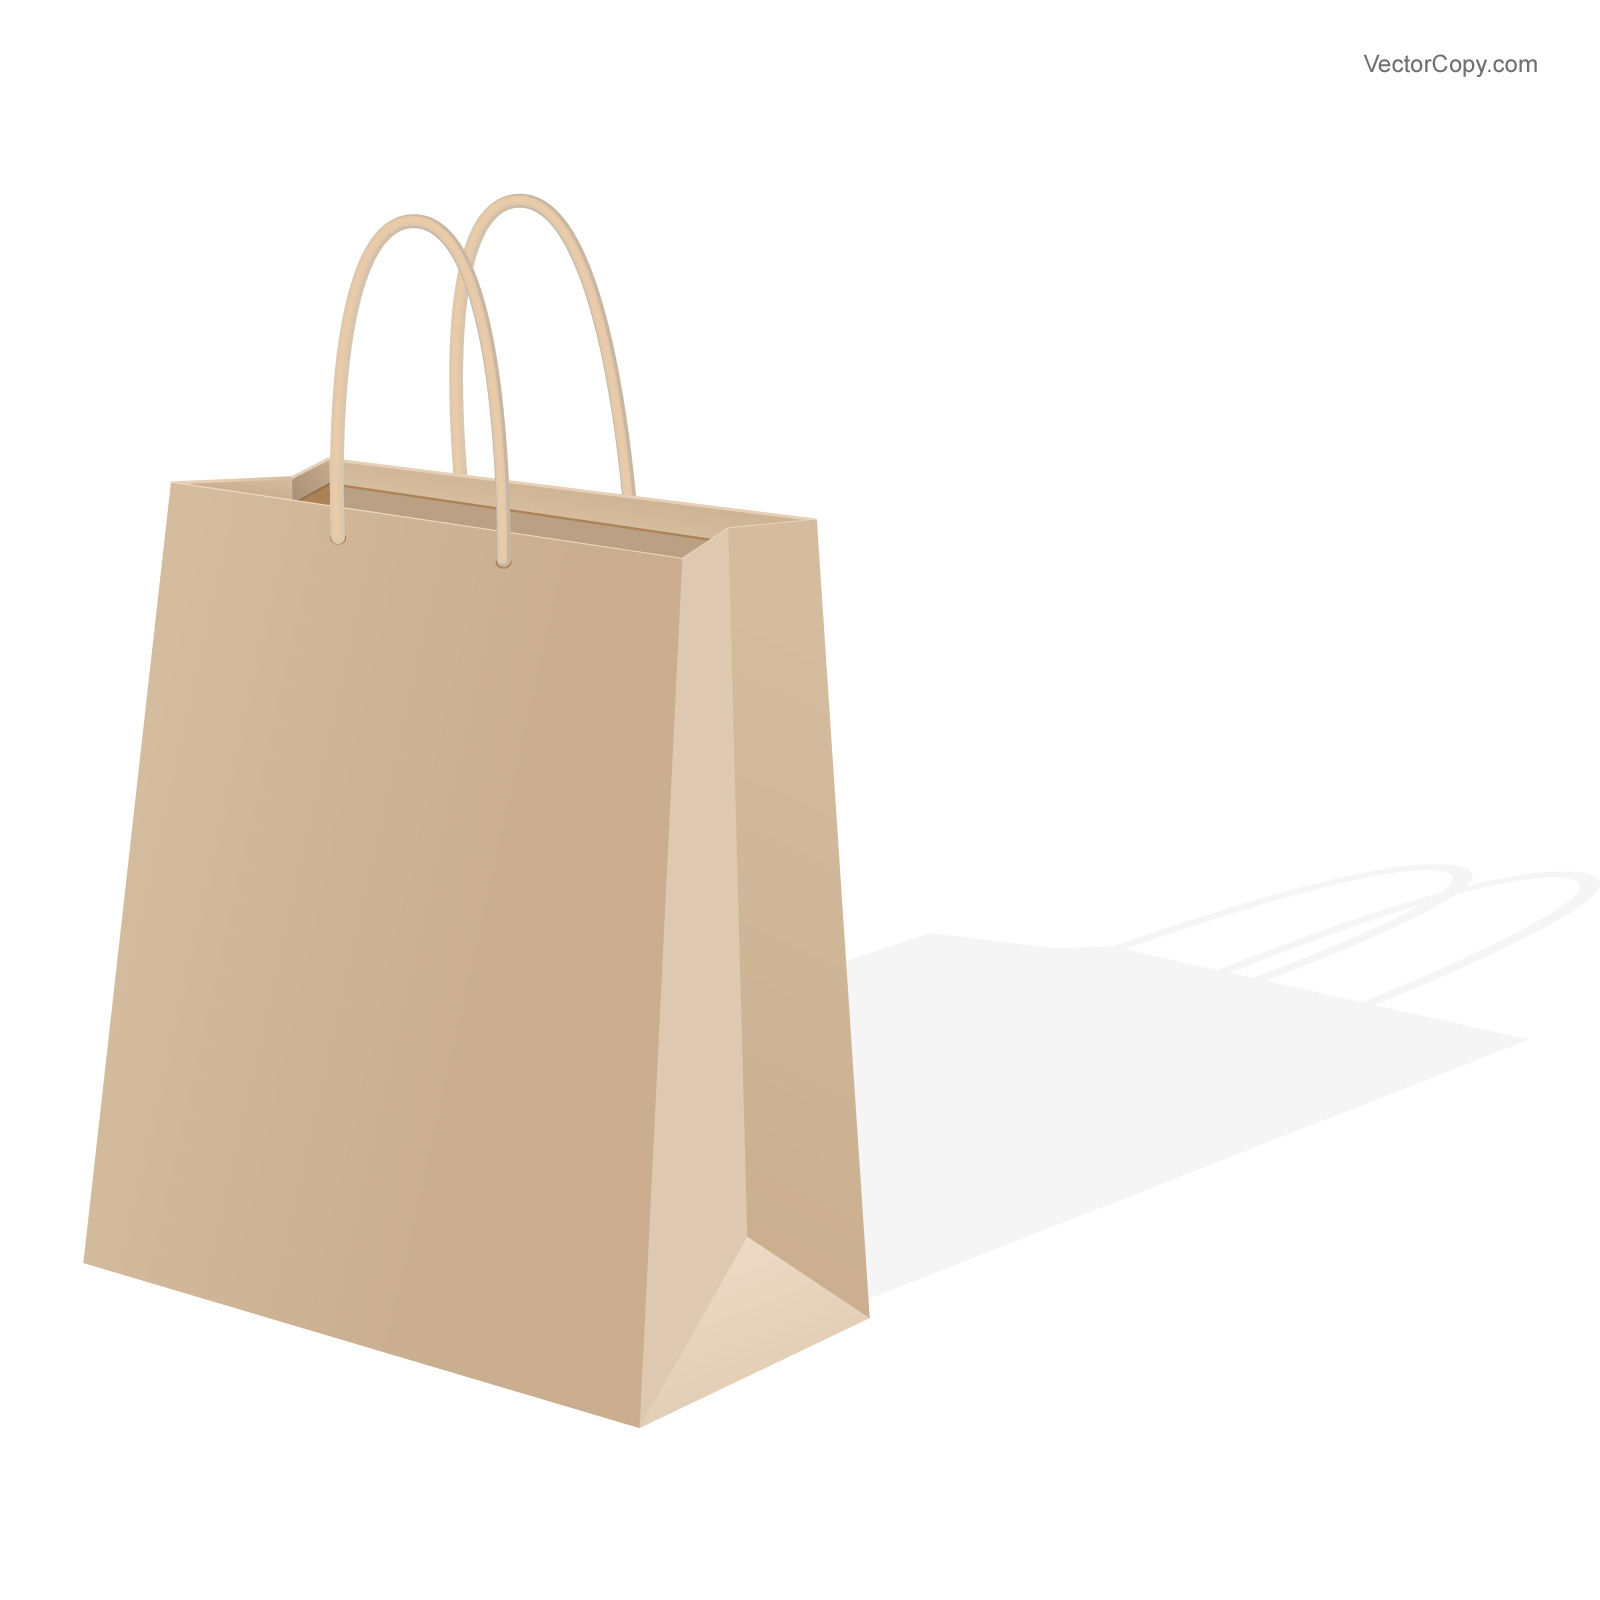 7 shopping bag vector images paper shopping bag vector free shopping bag icon vector and black shopping bag vector newdesignfile com http www newdesignfile com post shopping bag vector 392406